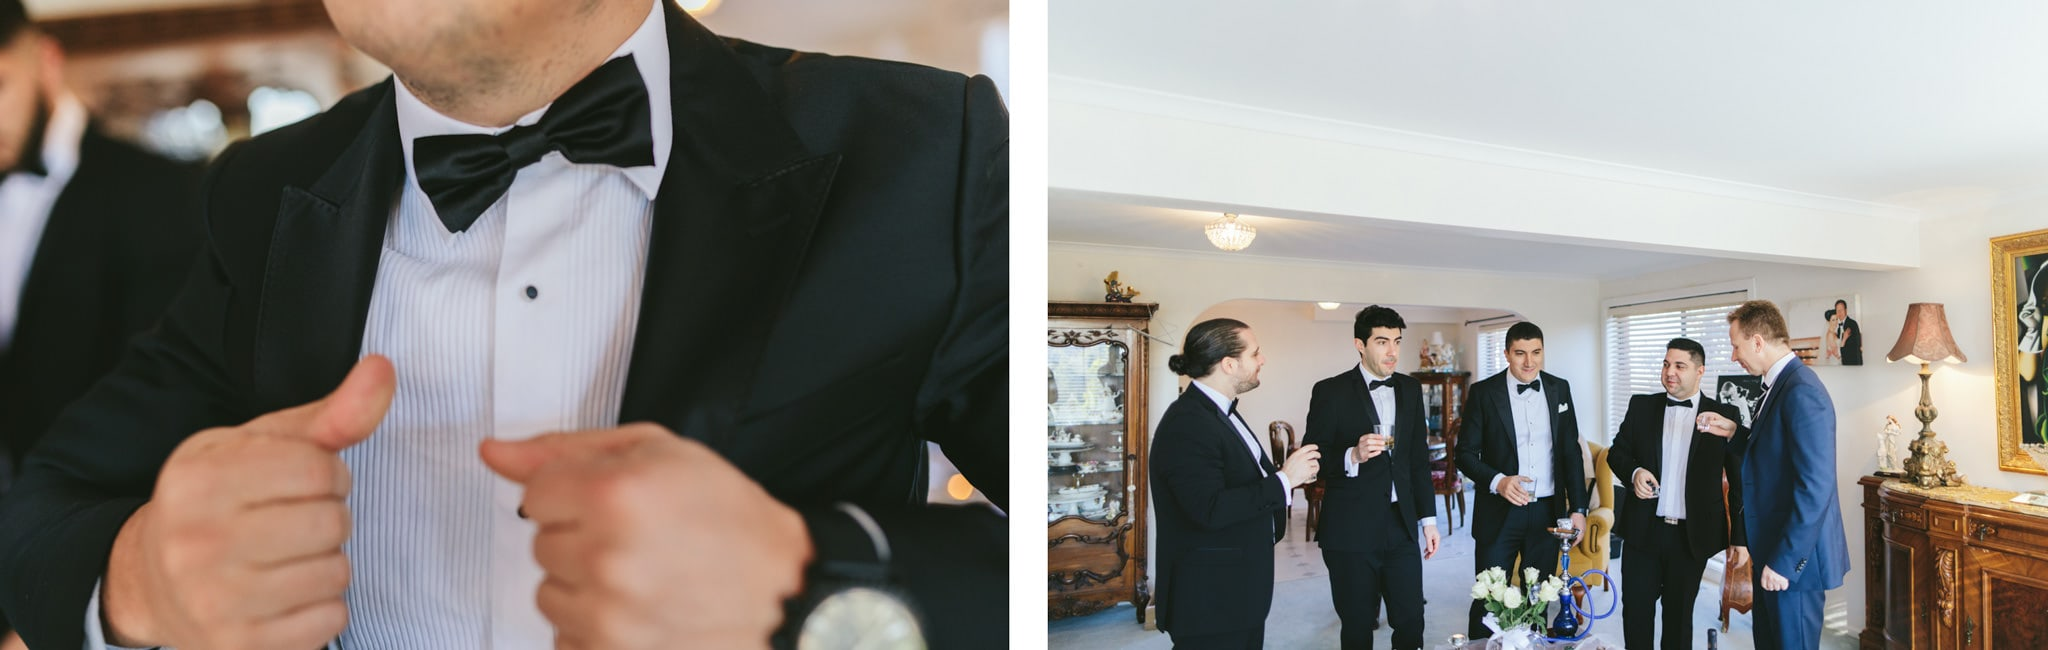 photos of groom getting ready for greek wedding with groomsmen - drinking whiskey